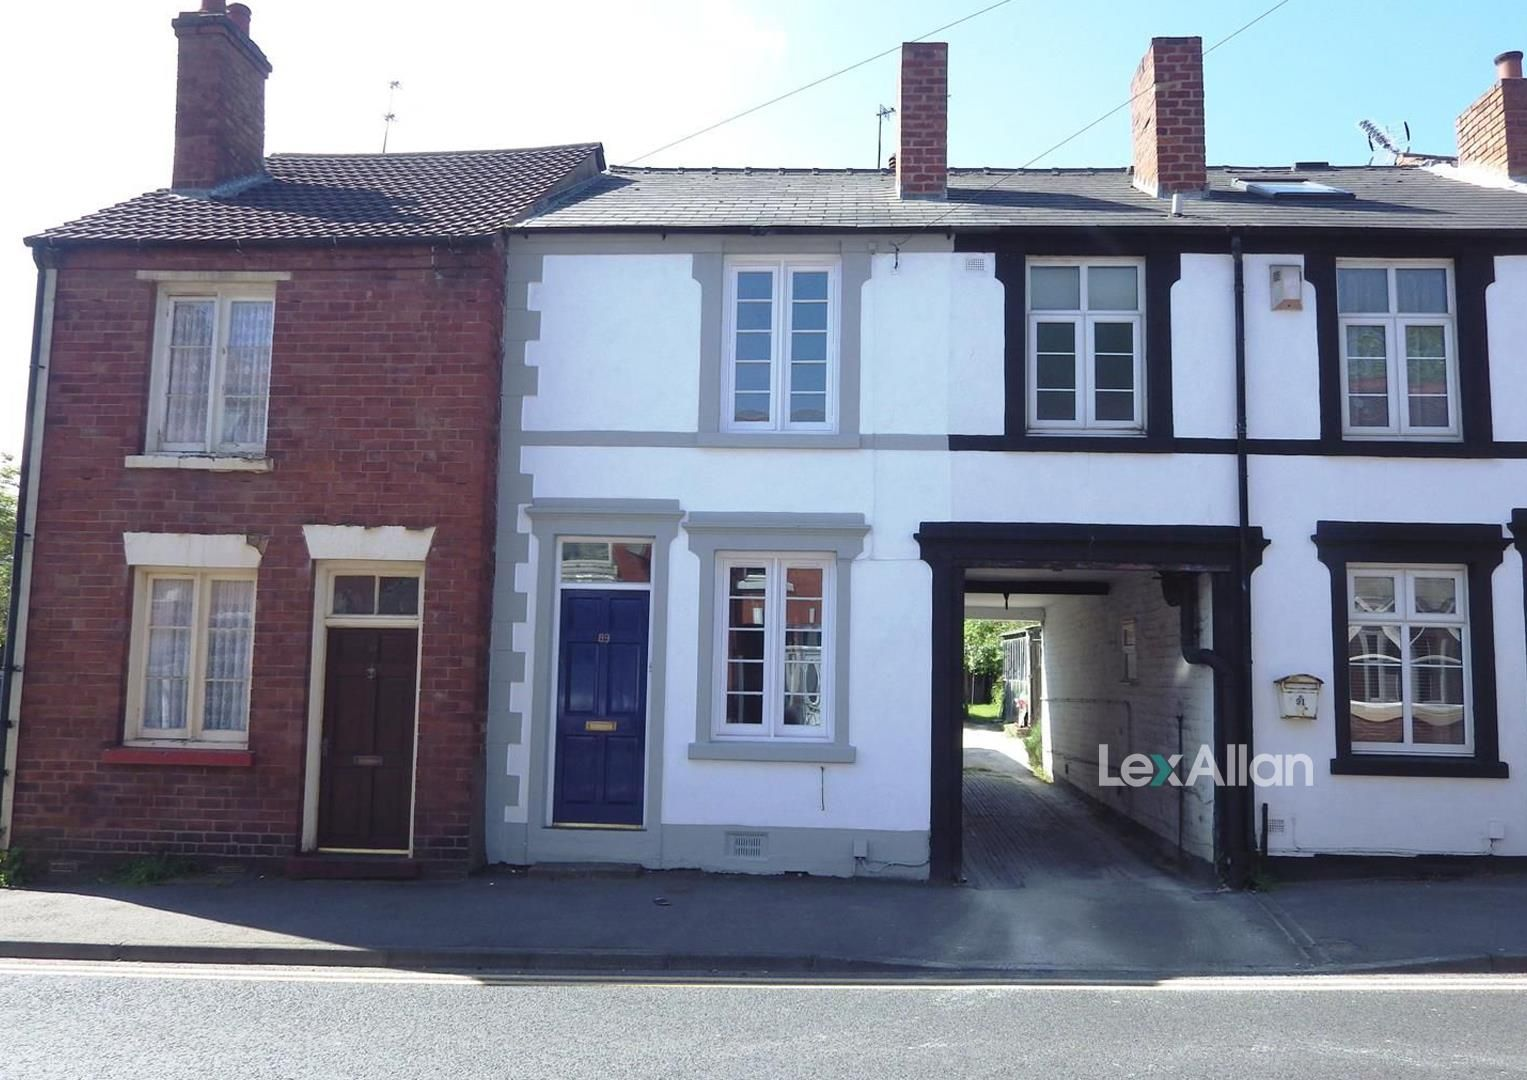 2 bed terraced for sale in Oldswinford, DY8